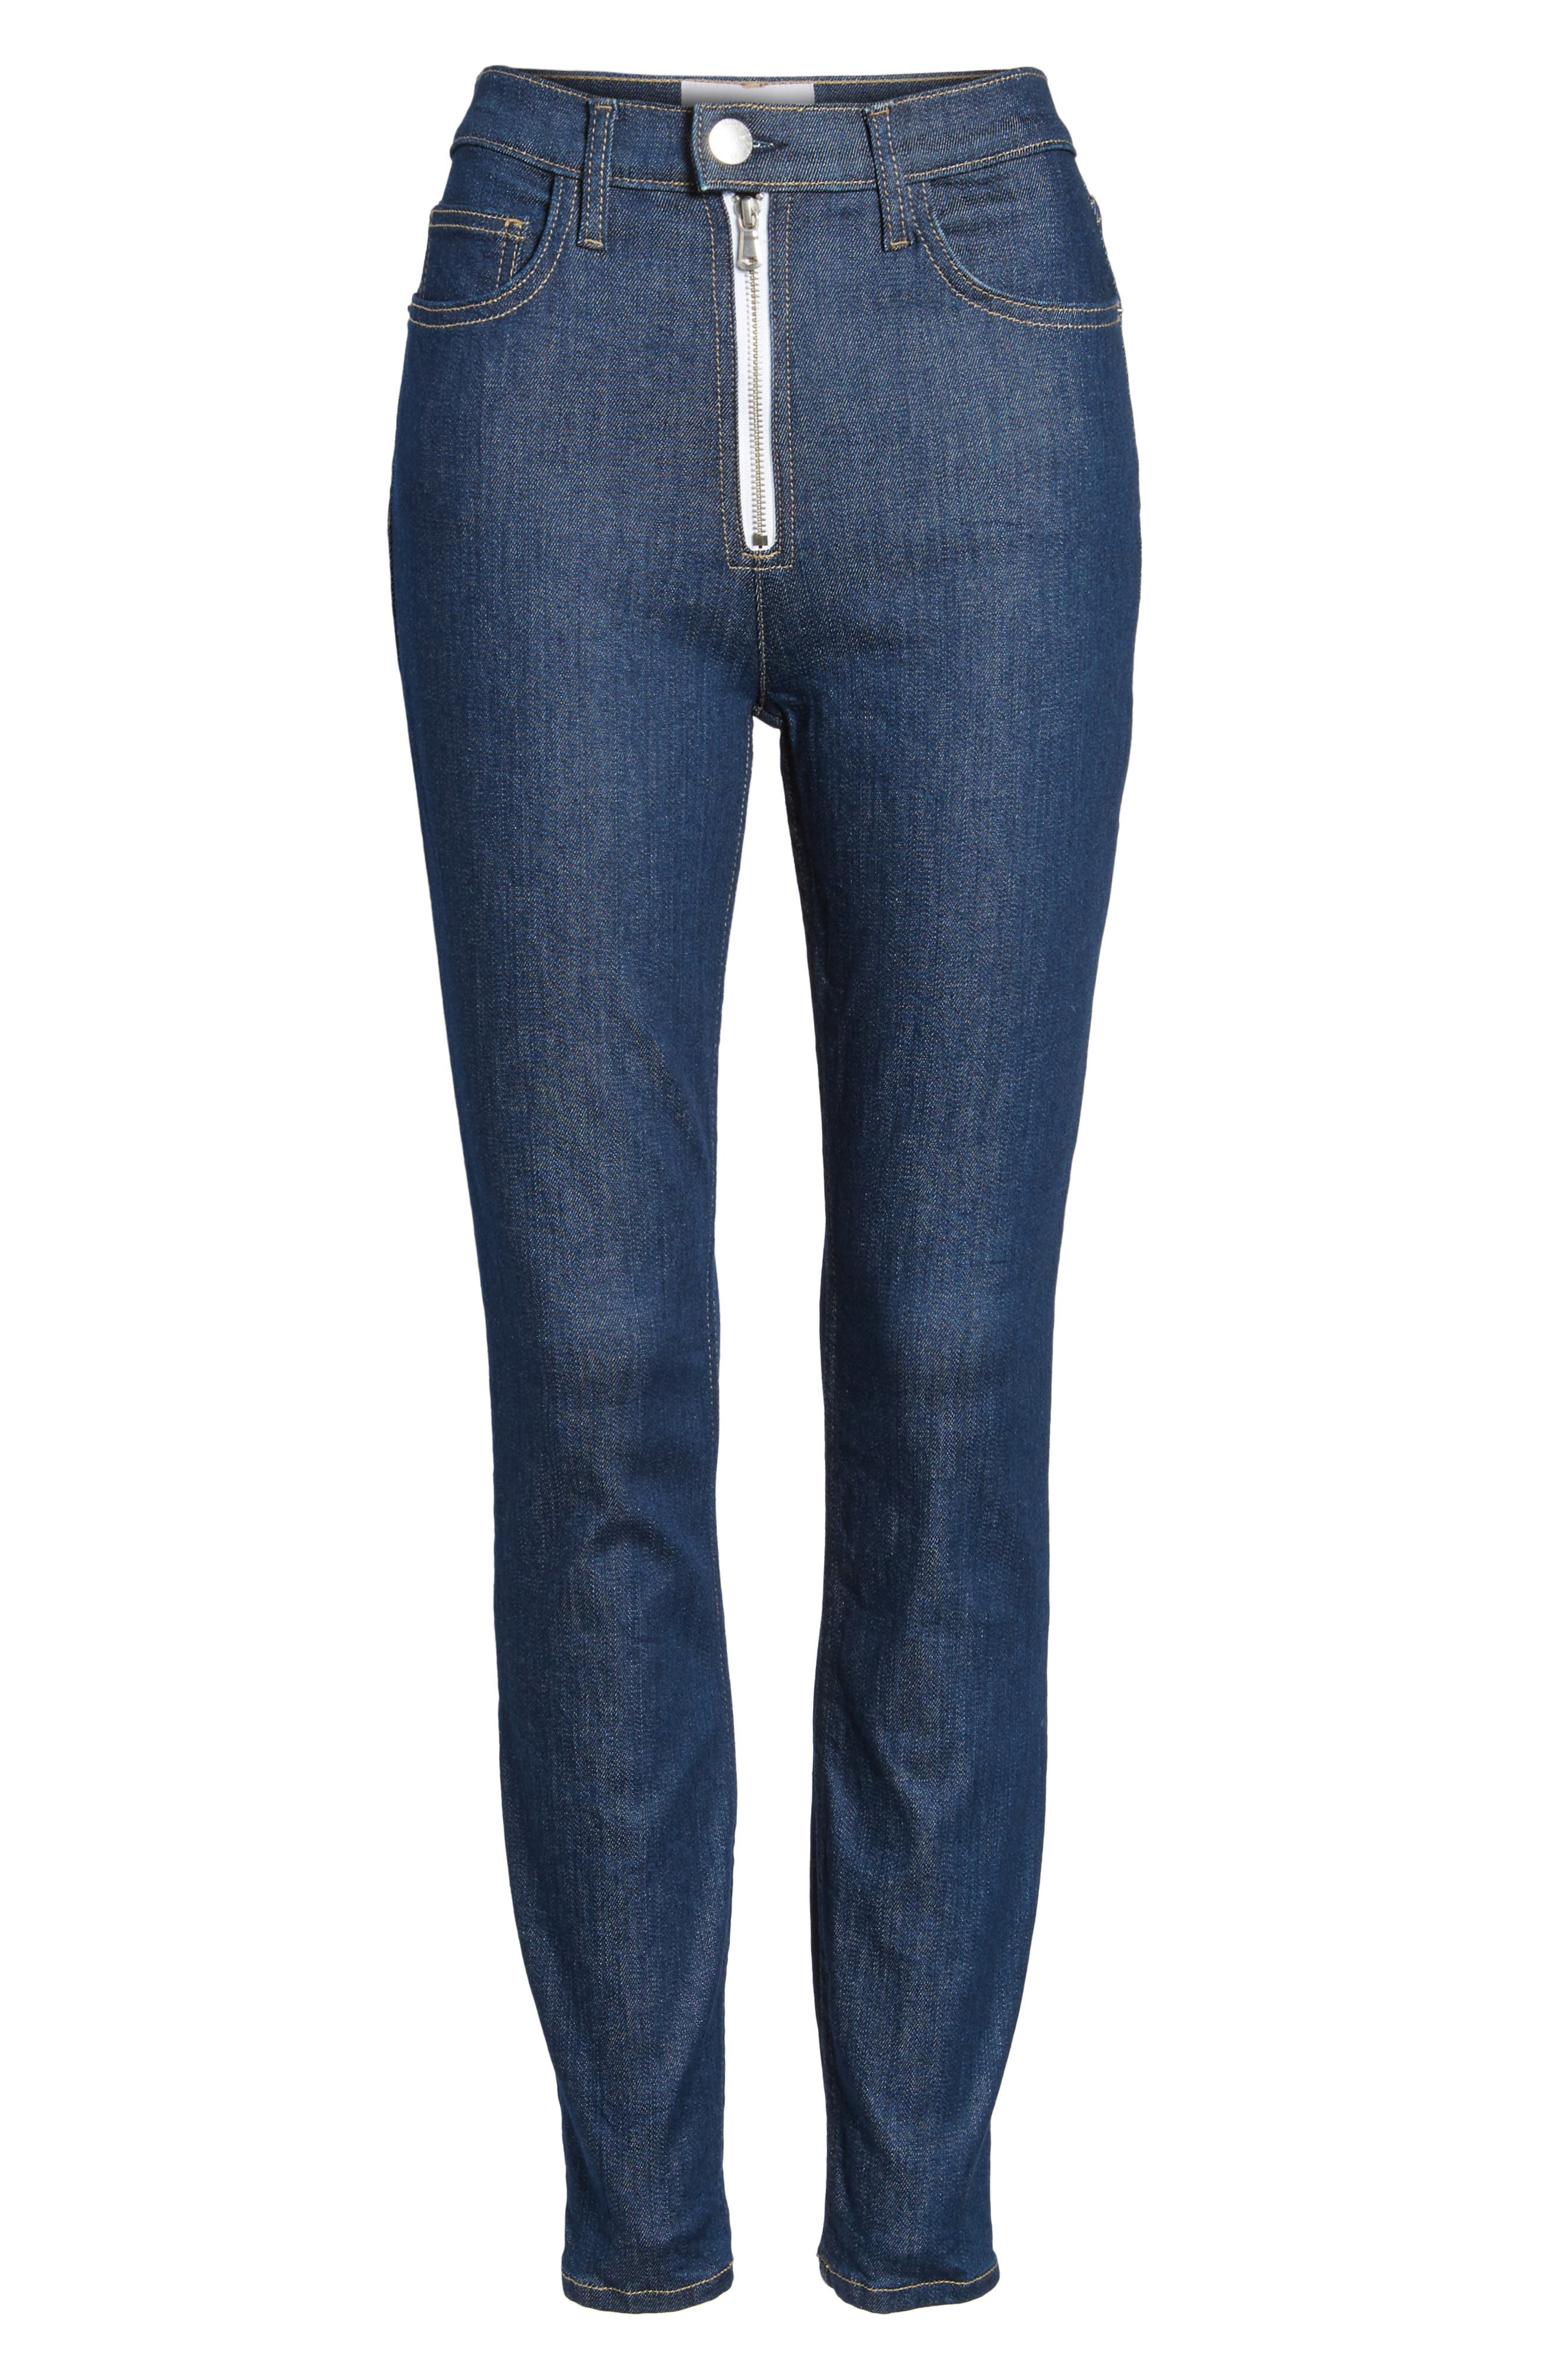 The Ultra High Waist Skinny Jeans,                             Alternate thumbnail 7, color,                             483